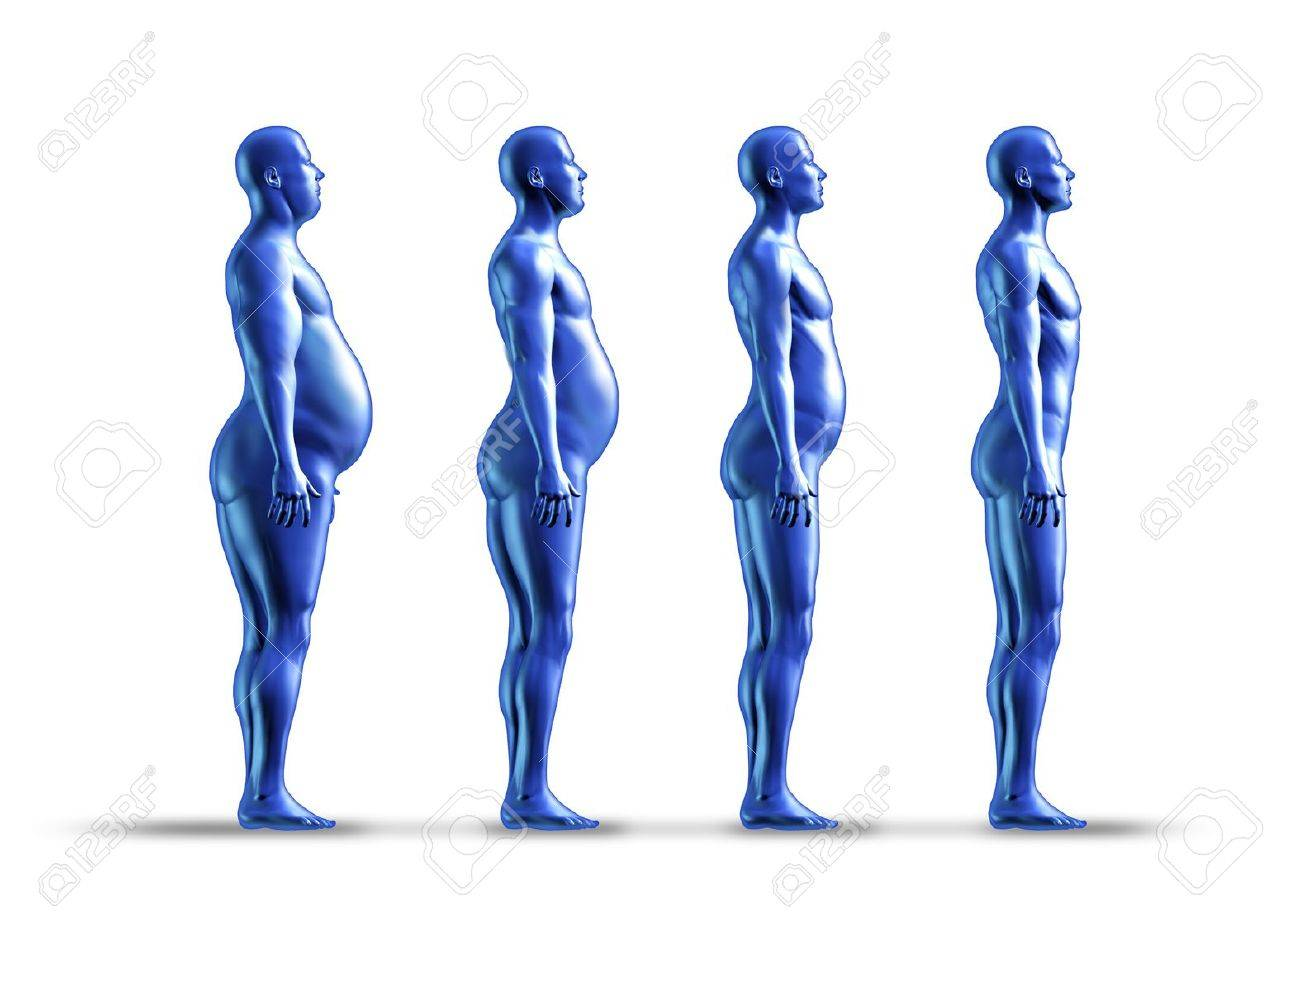 Human weight loss chart symbol represented by an obese human human weight loss chart symbol represented by an obese human gradualy losing fat resulting in a nvjuhfo Gallery